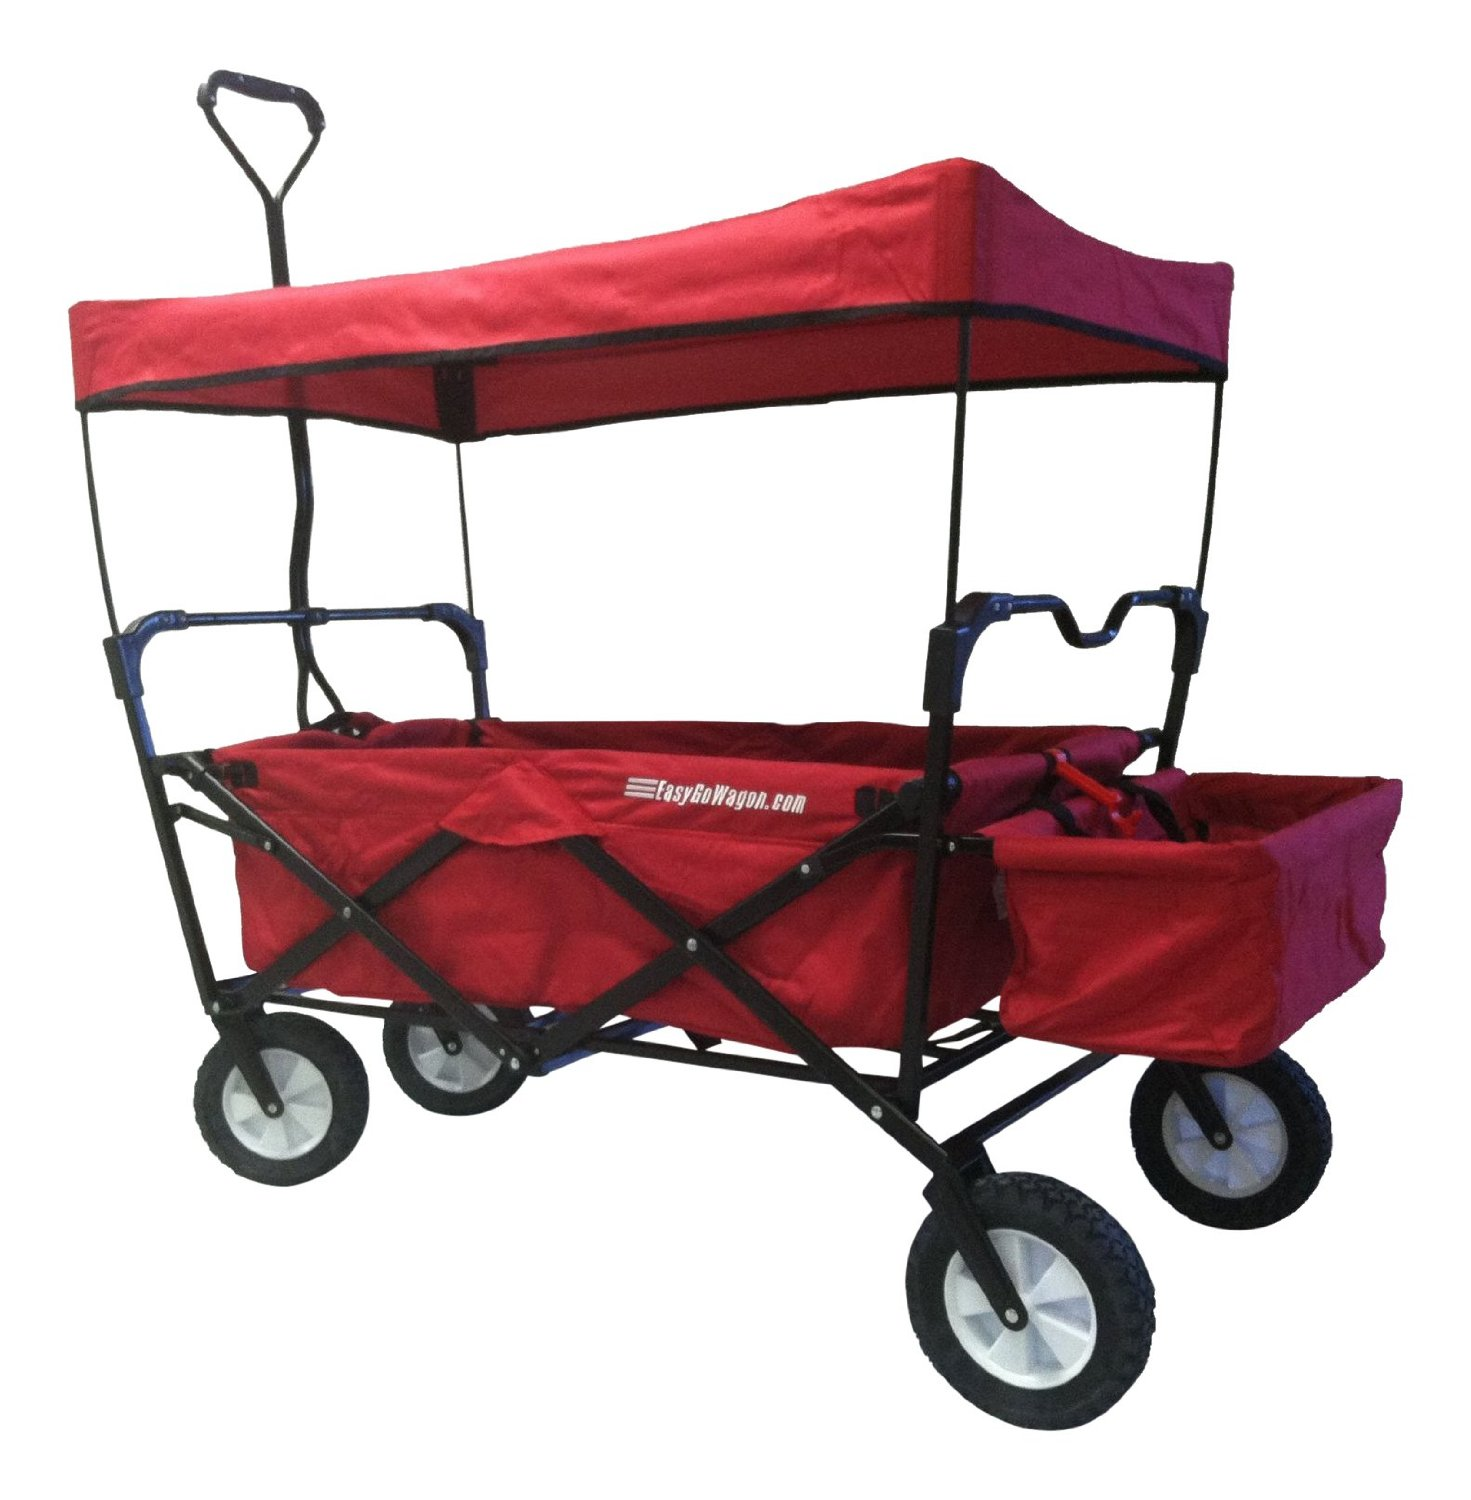 Top 10 Folding Wagons — Best Reviews for Your Easy Choice in 2019